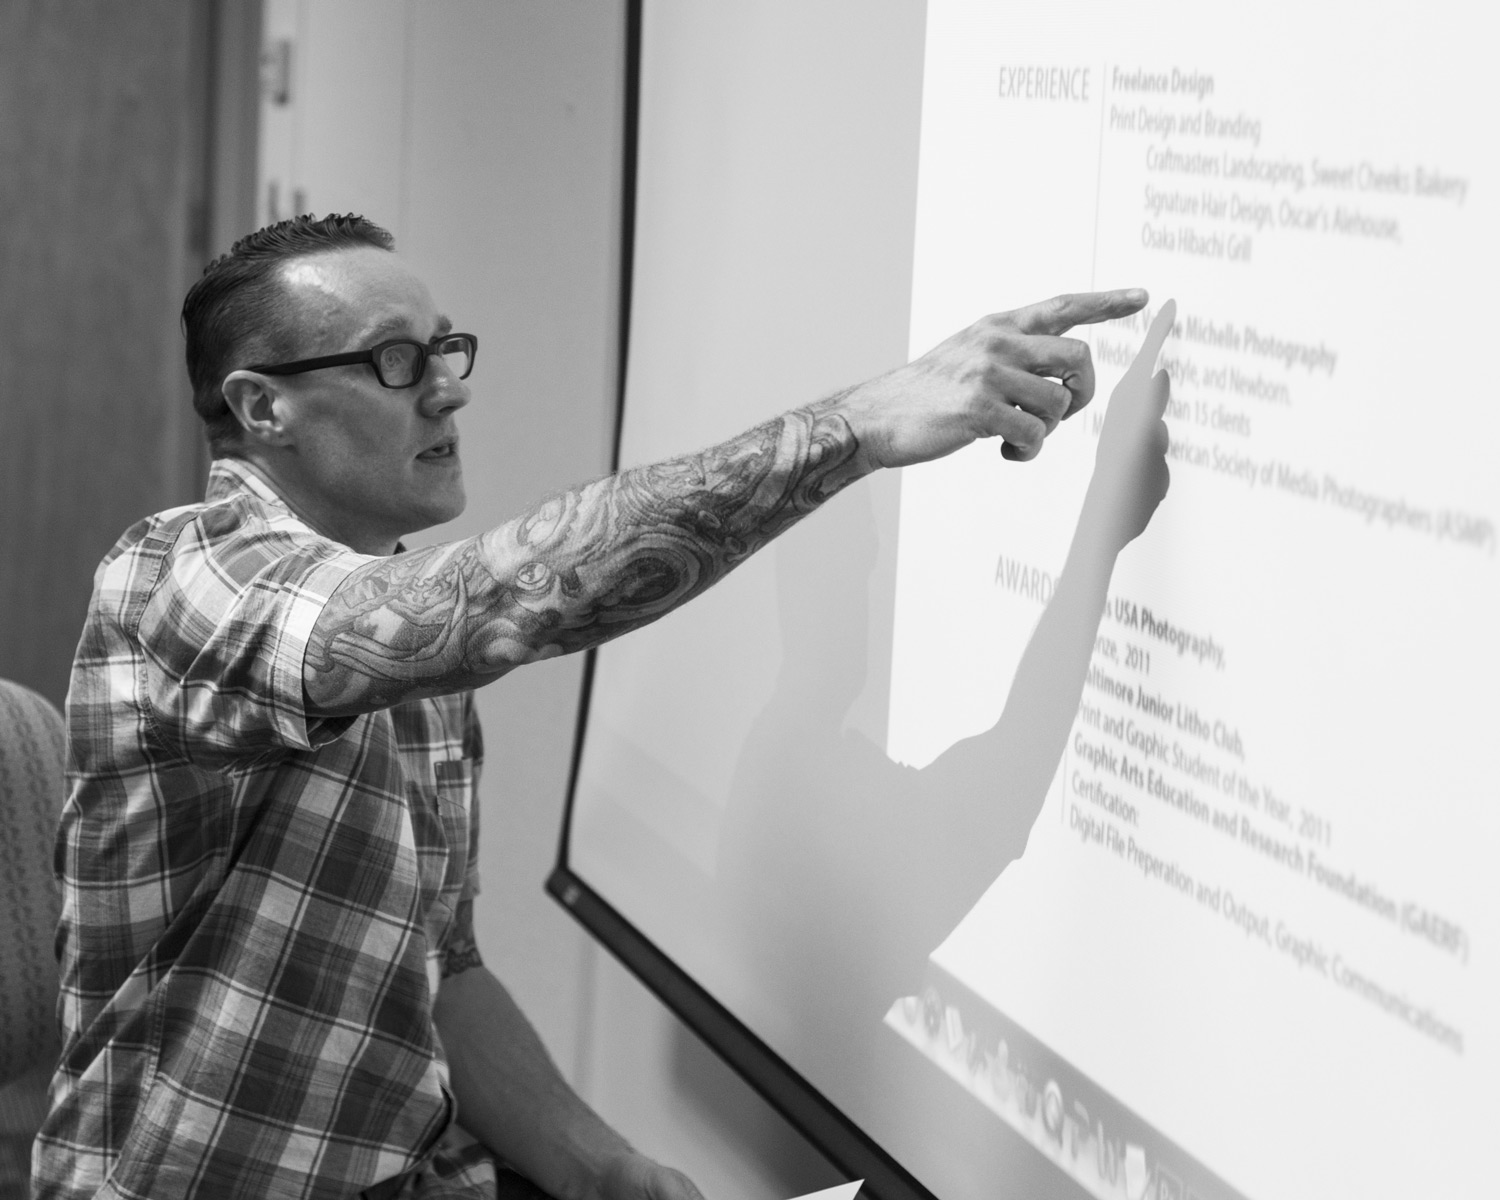 Graphic designer Bob Gillespie reviews a student resume at Stevenson University April 8.